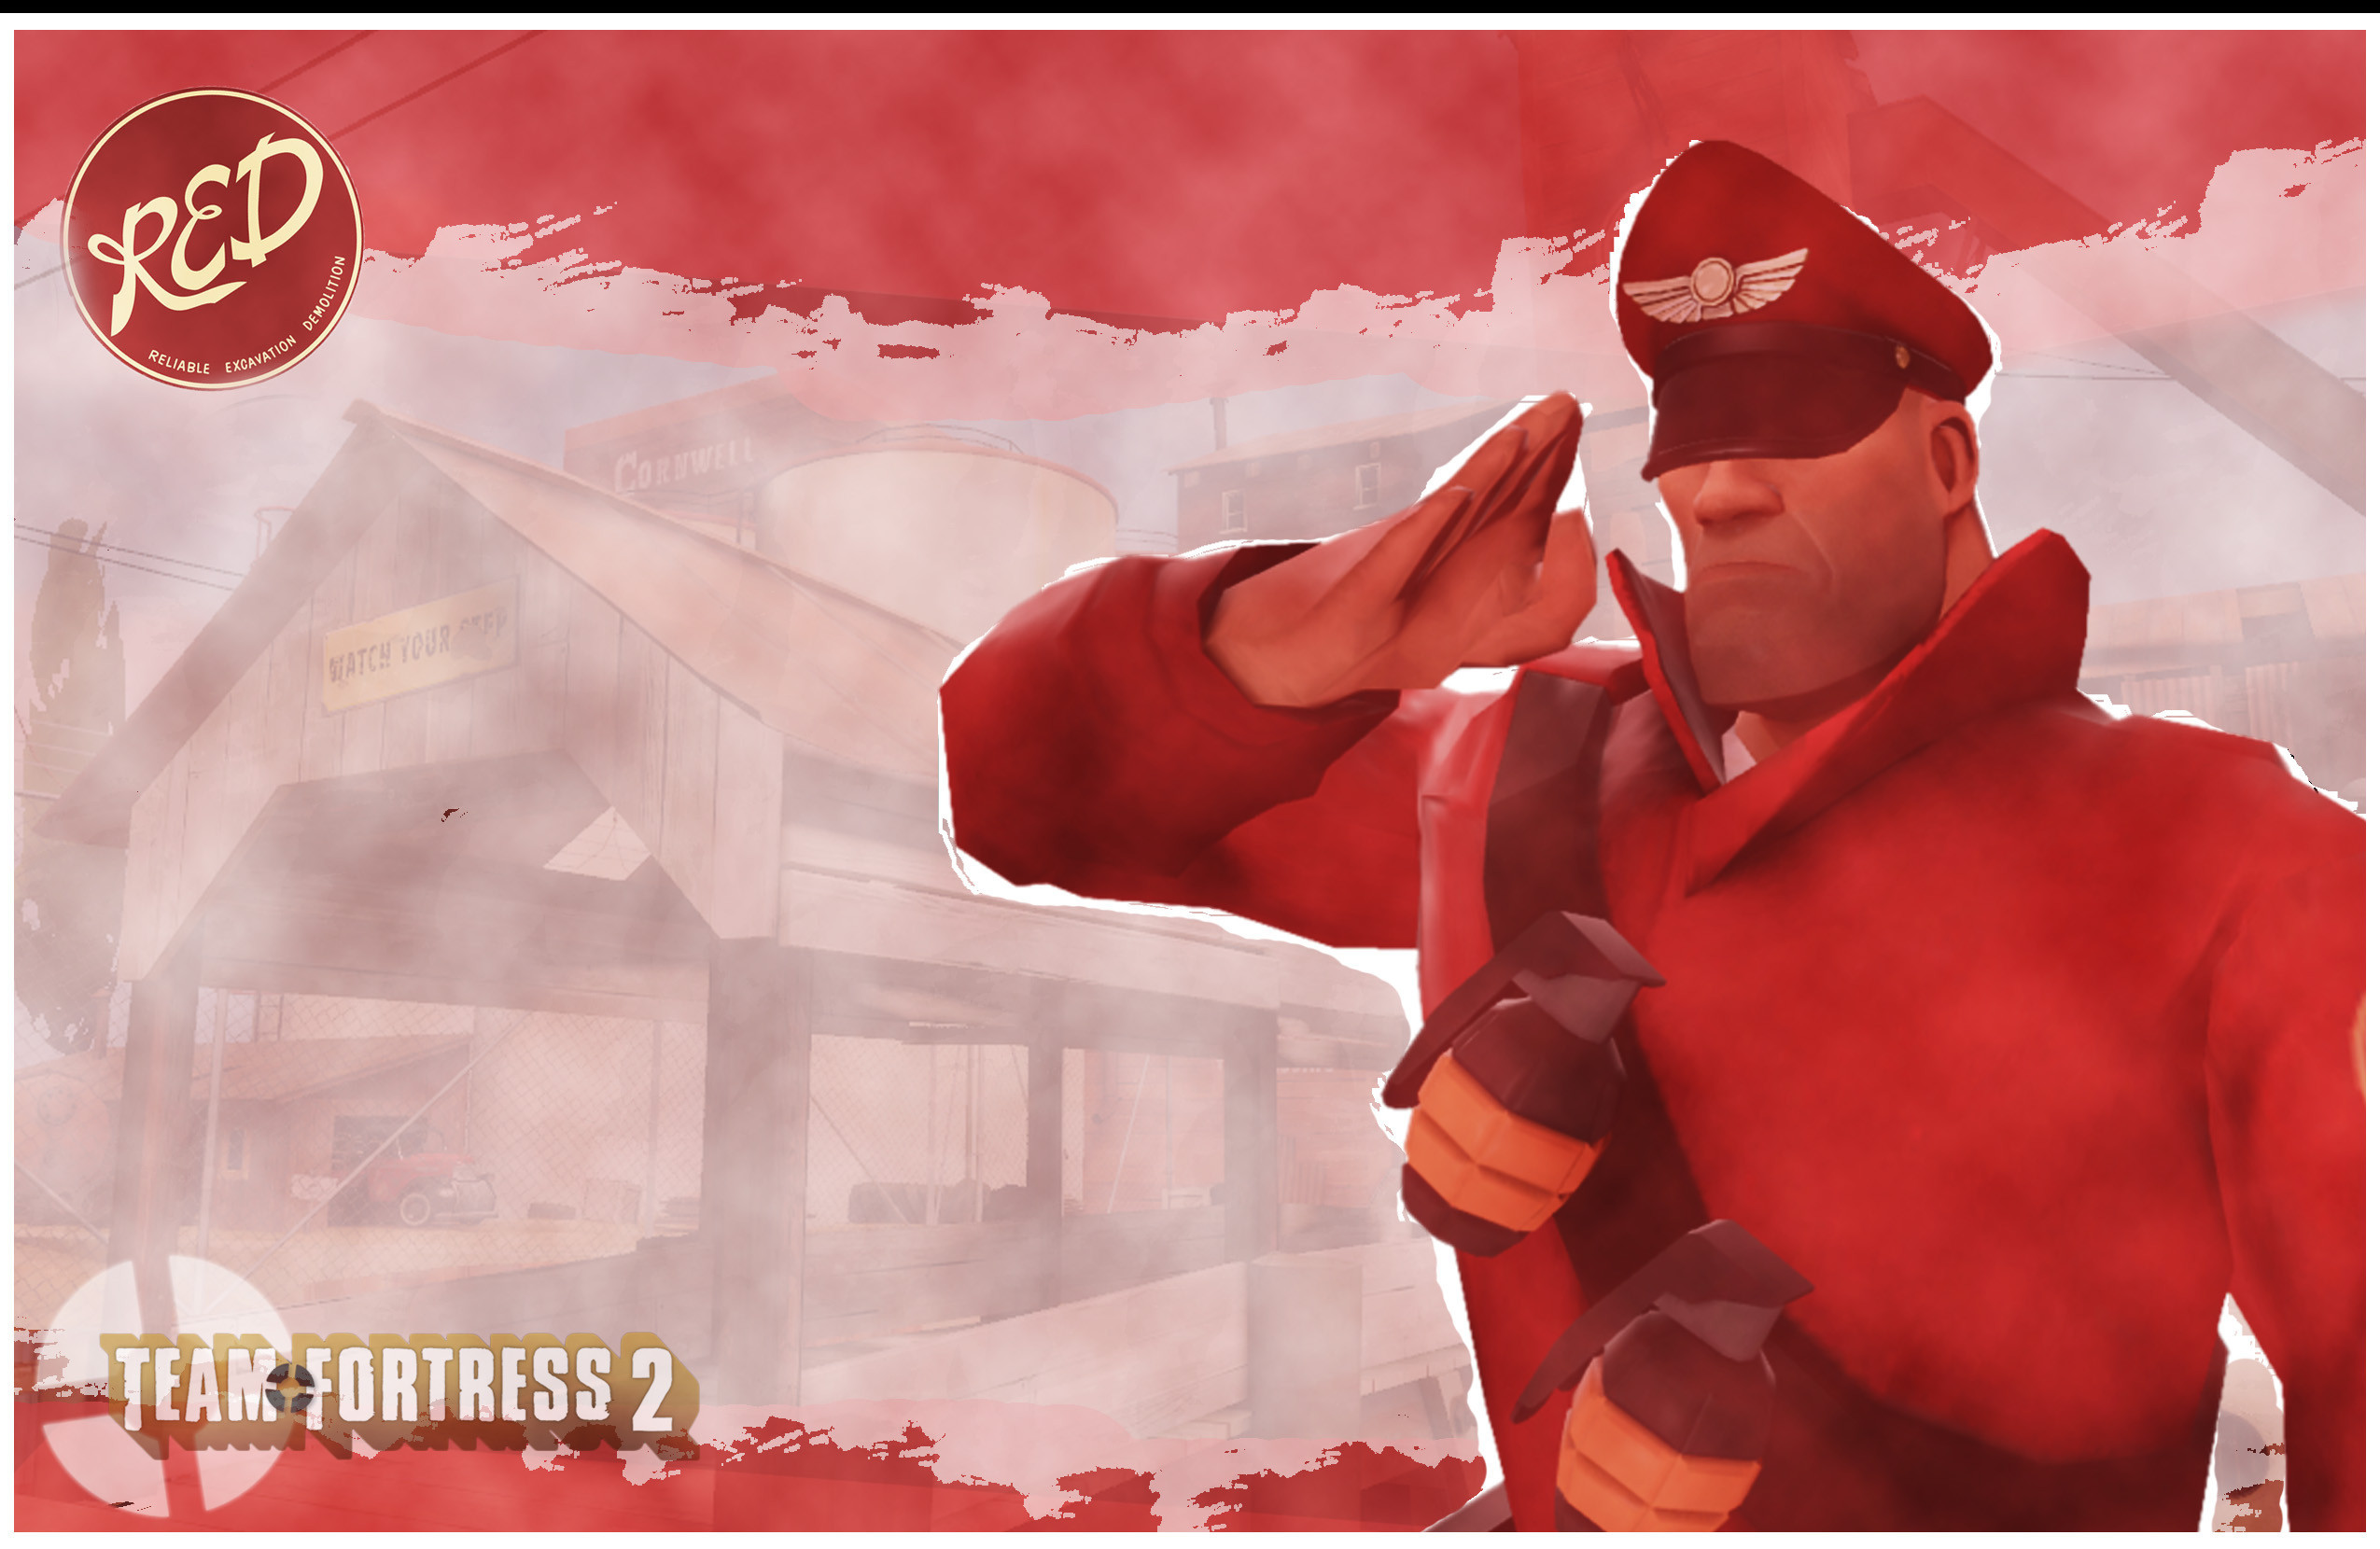 2550x1660 Team Fortress 2 Wallpaper Soldier by marcoshypnos Team Fortress 2 Wallpaper  Soldier by marcoshypnos